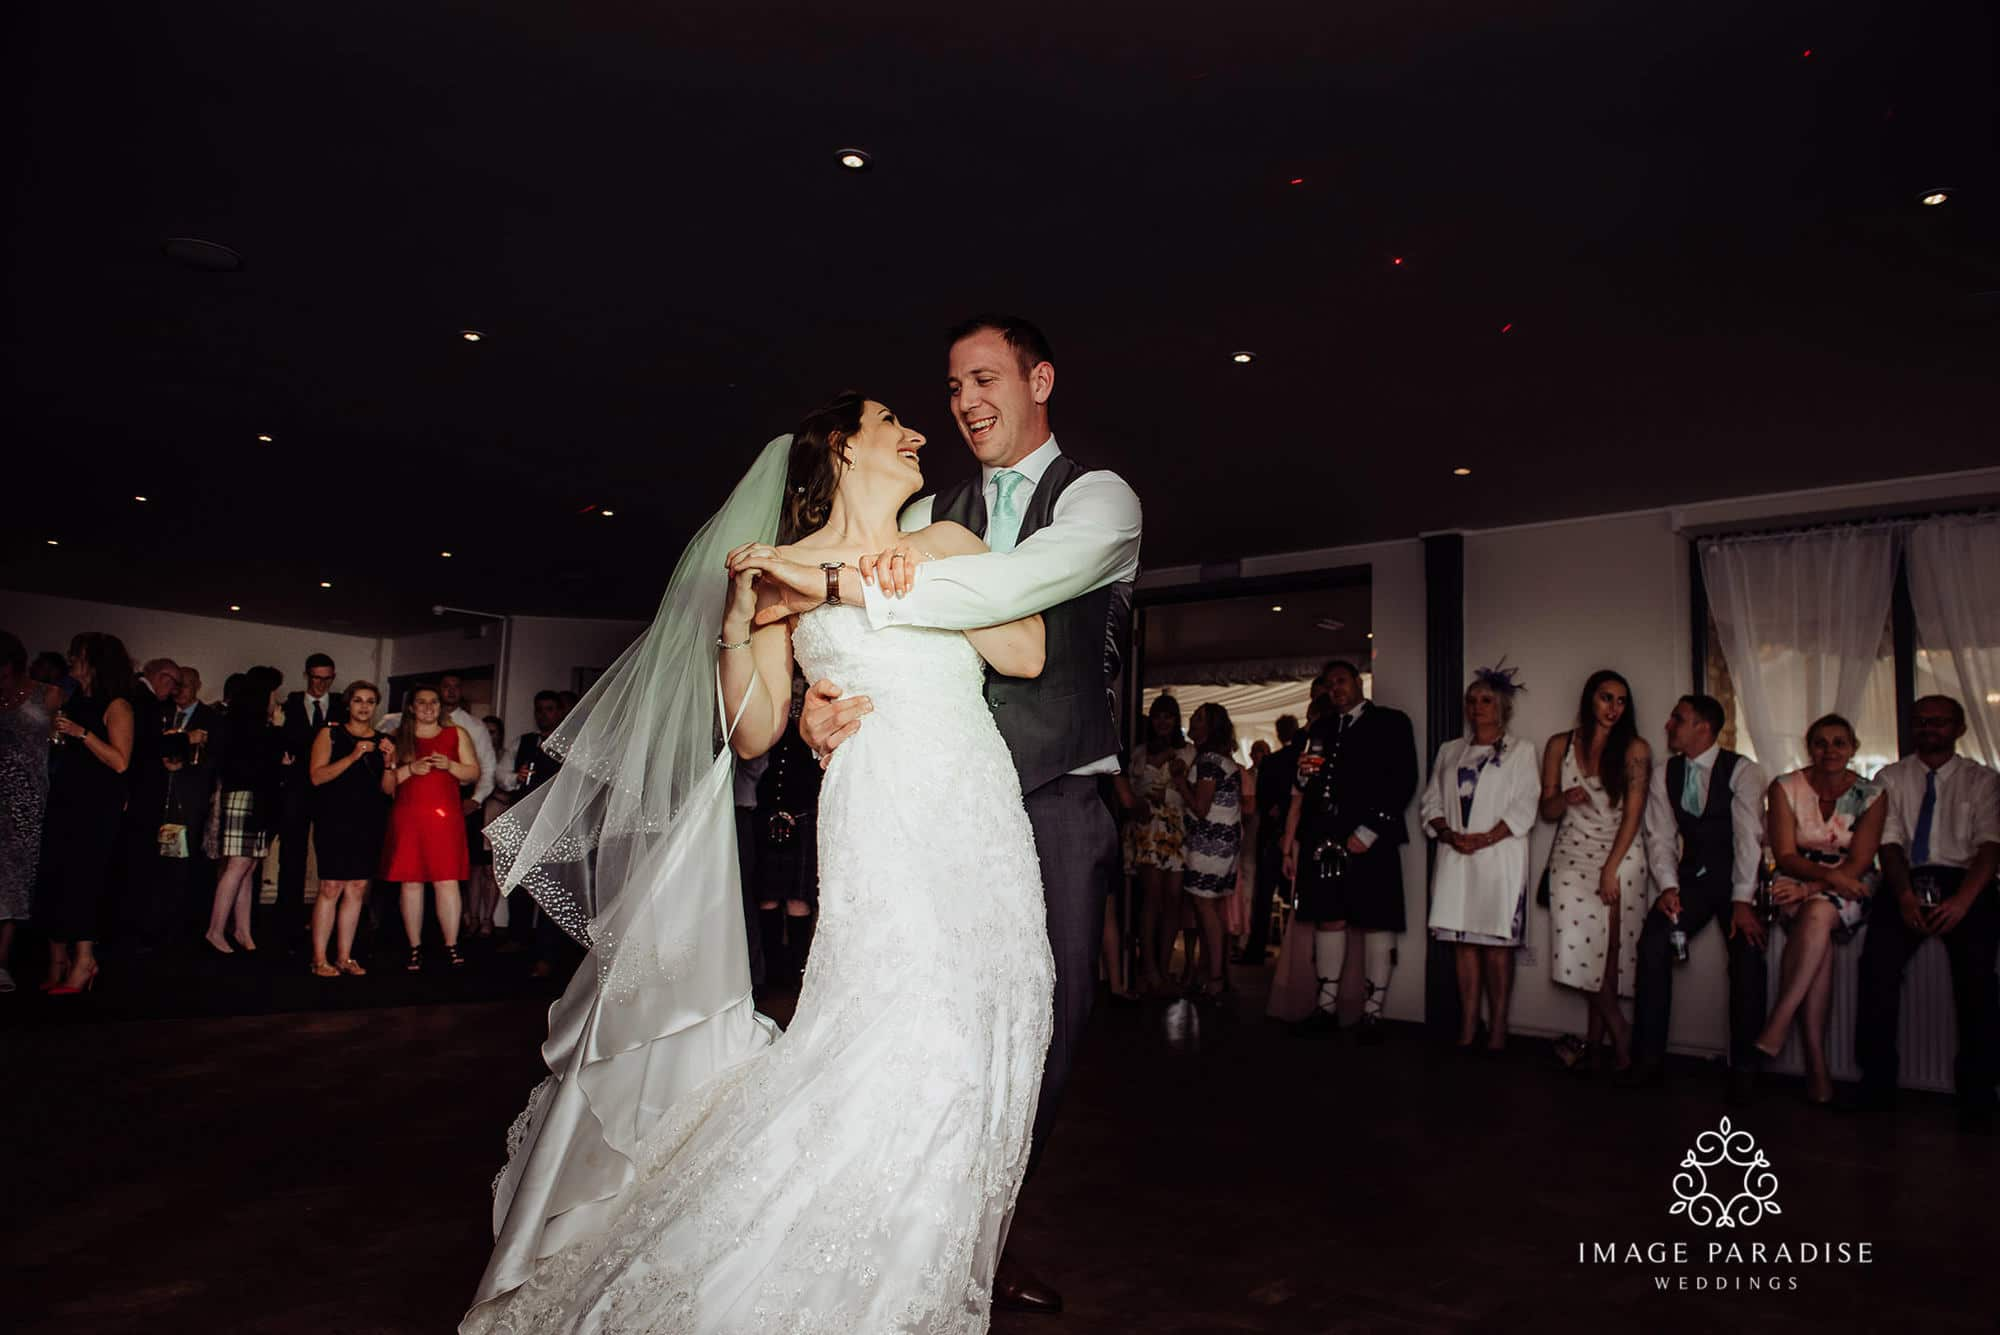 the first dance where groom spins his bride on the dance floor at the Cotswolds hotel and spa